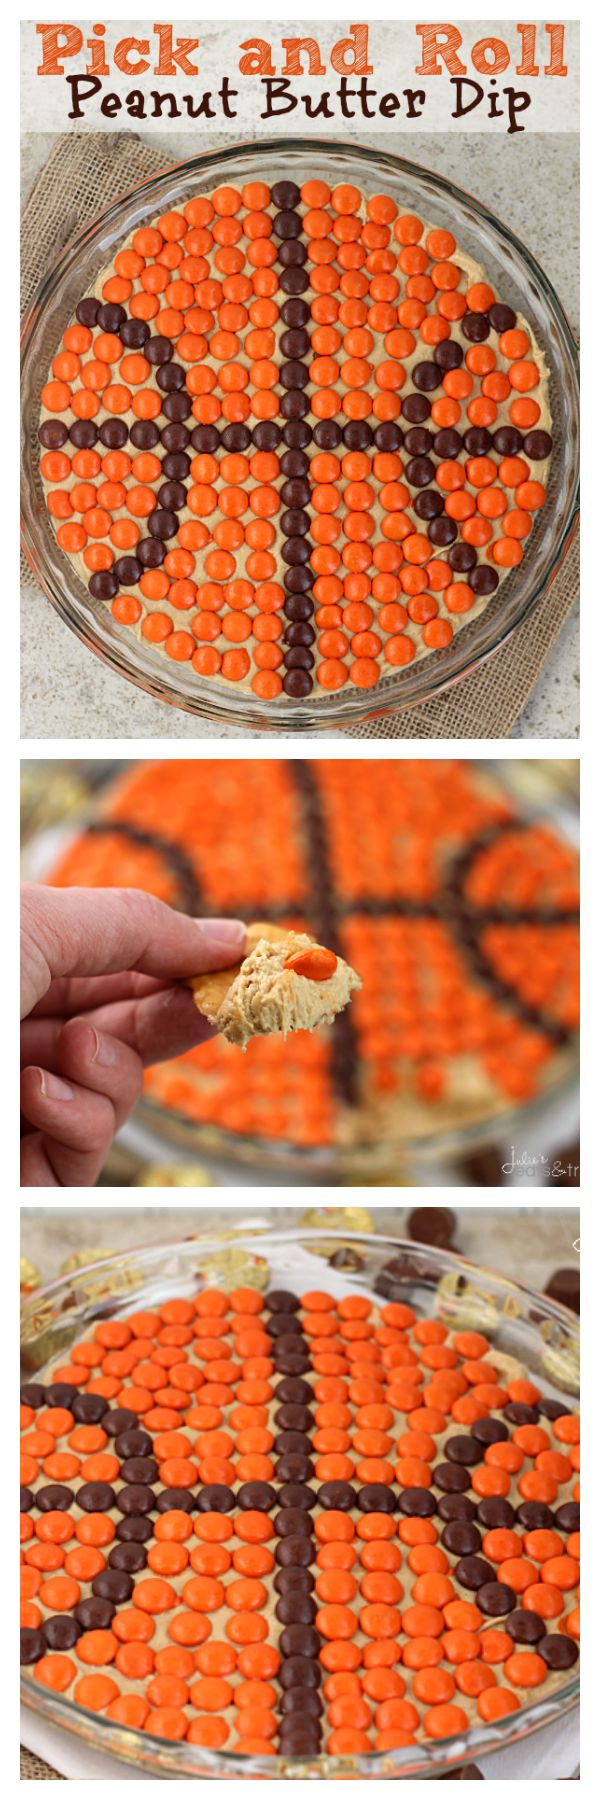 Pick and Roll Peanut Butter Dip ~ Delicious, Creamy Peanut Butter Dip topped with Reese's Pieces! www.titanoutletstore.com